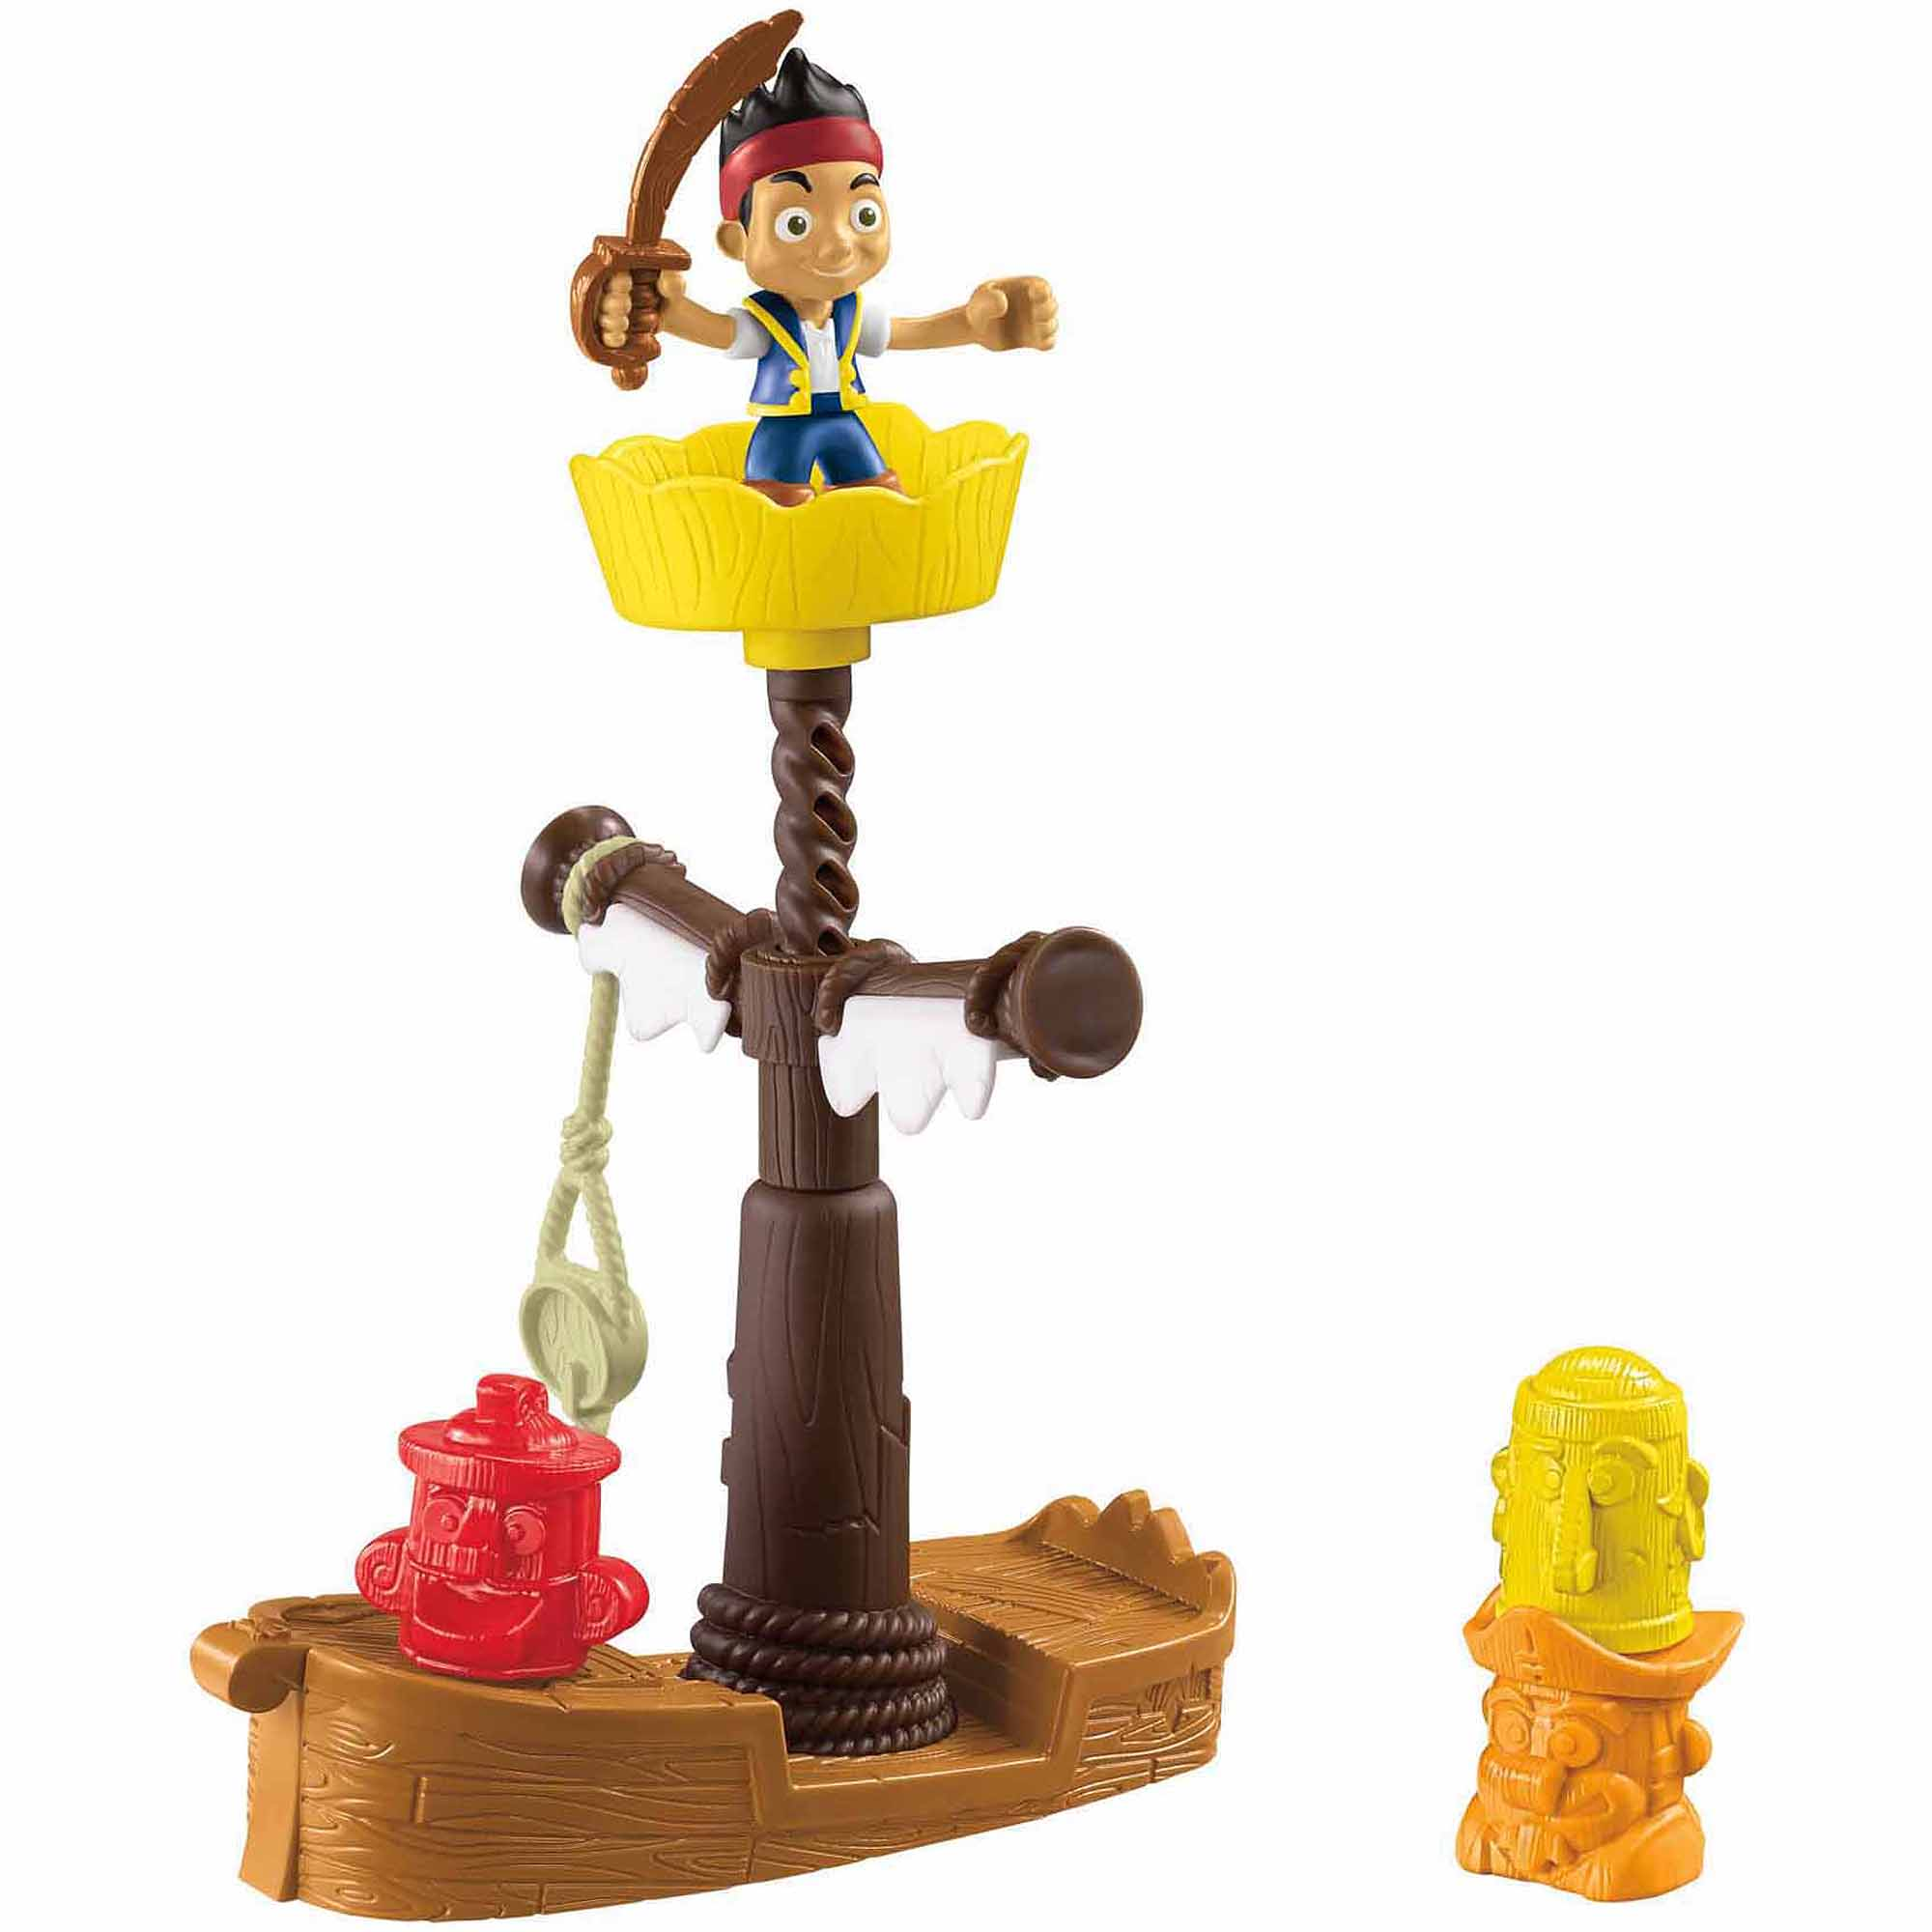 Fisher Price Jake and the Never Land Pirates Spinning Tiki Adventure by SUN YICK PLASTIC PRODUCTS (SZ) CO., LTD